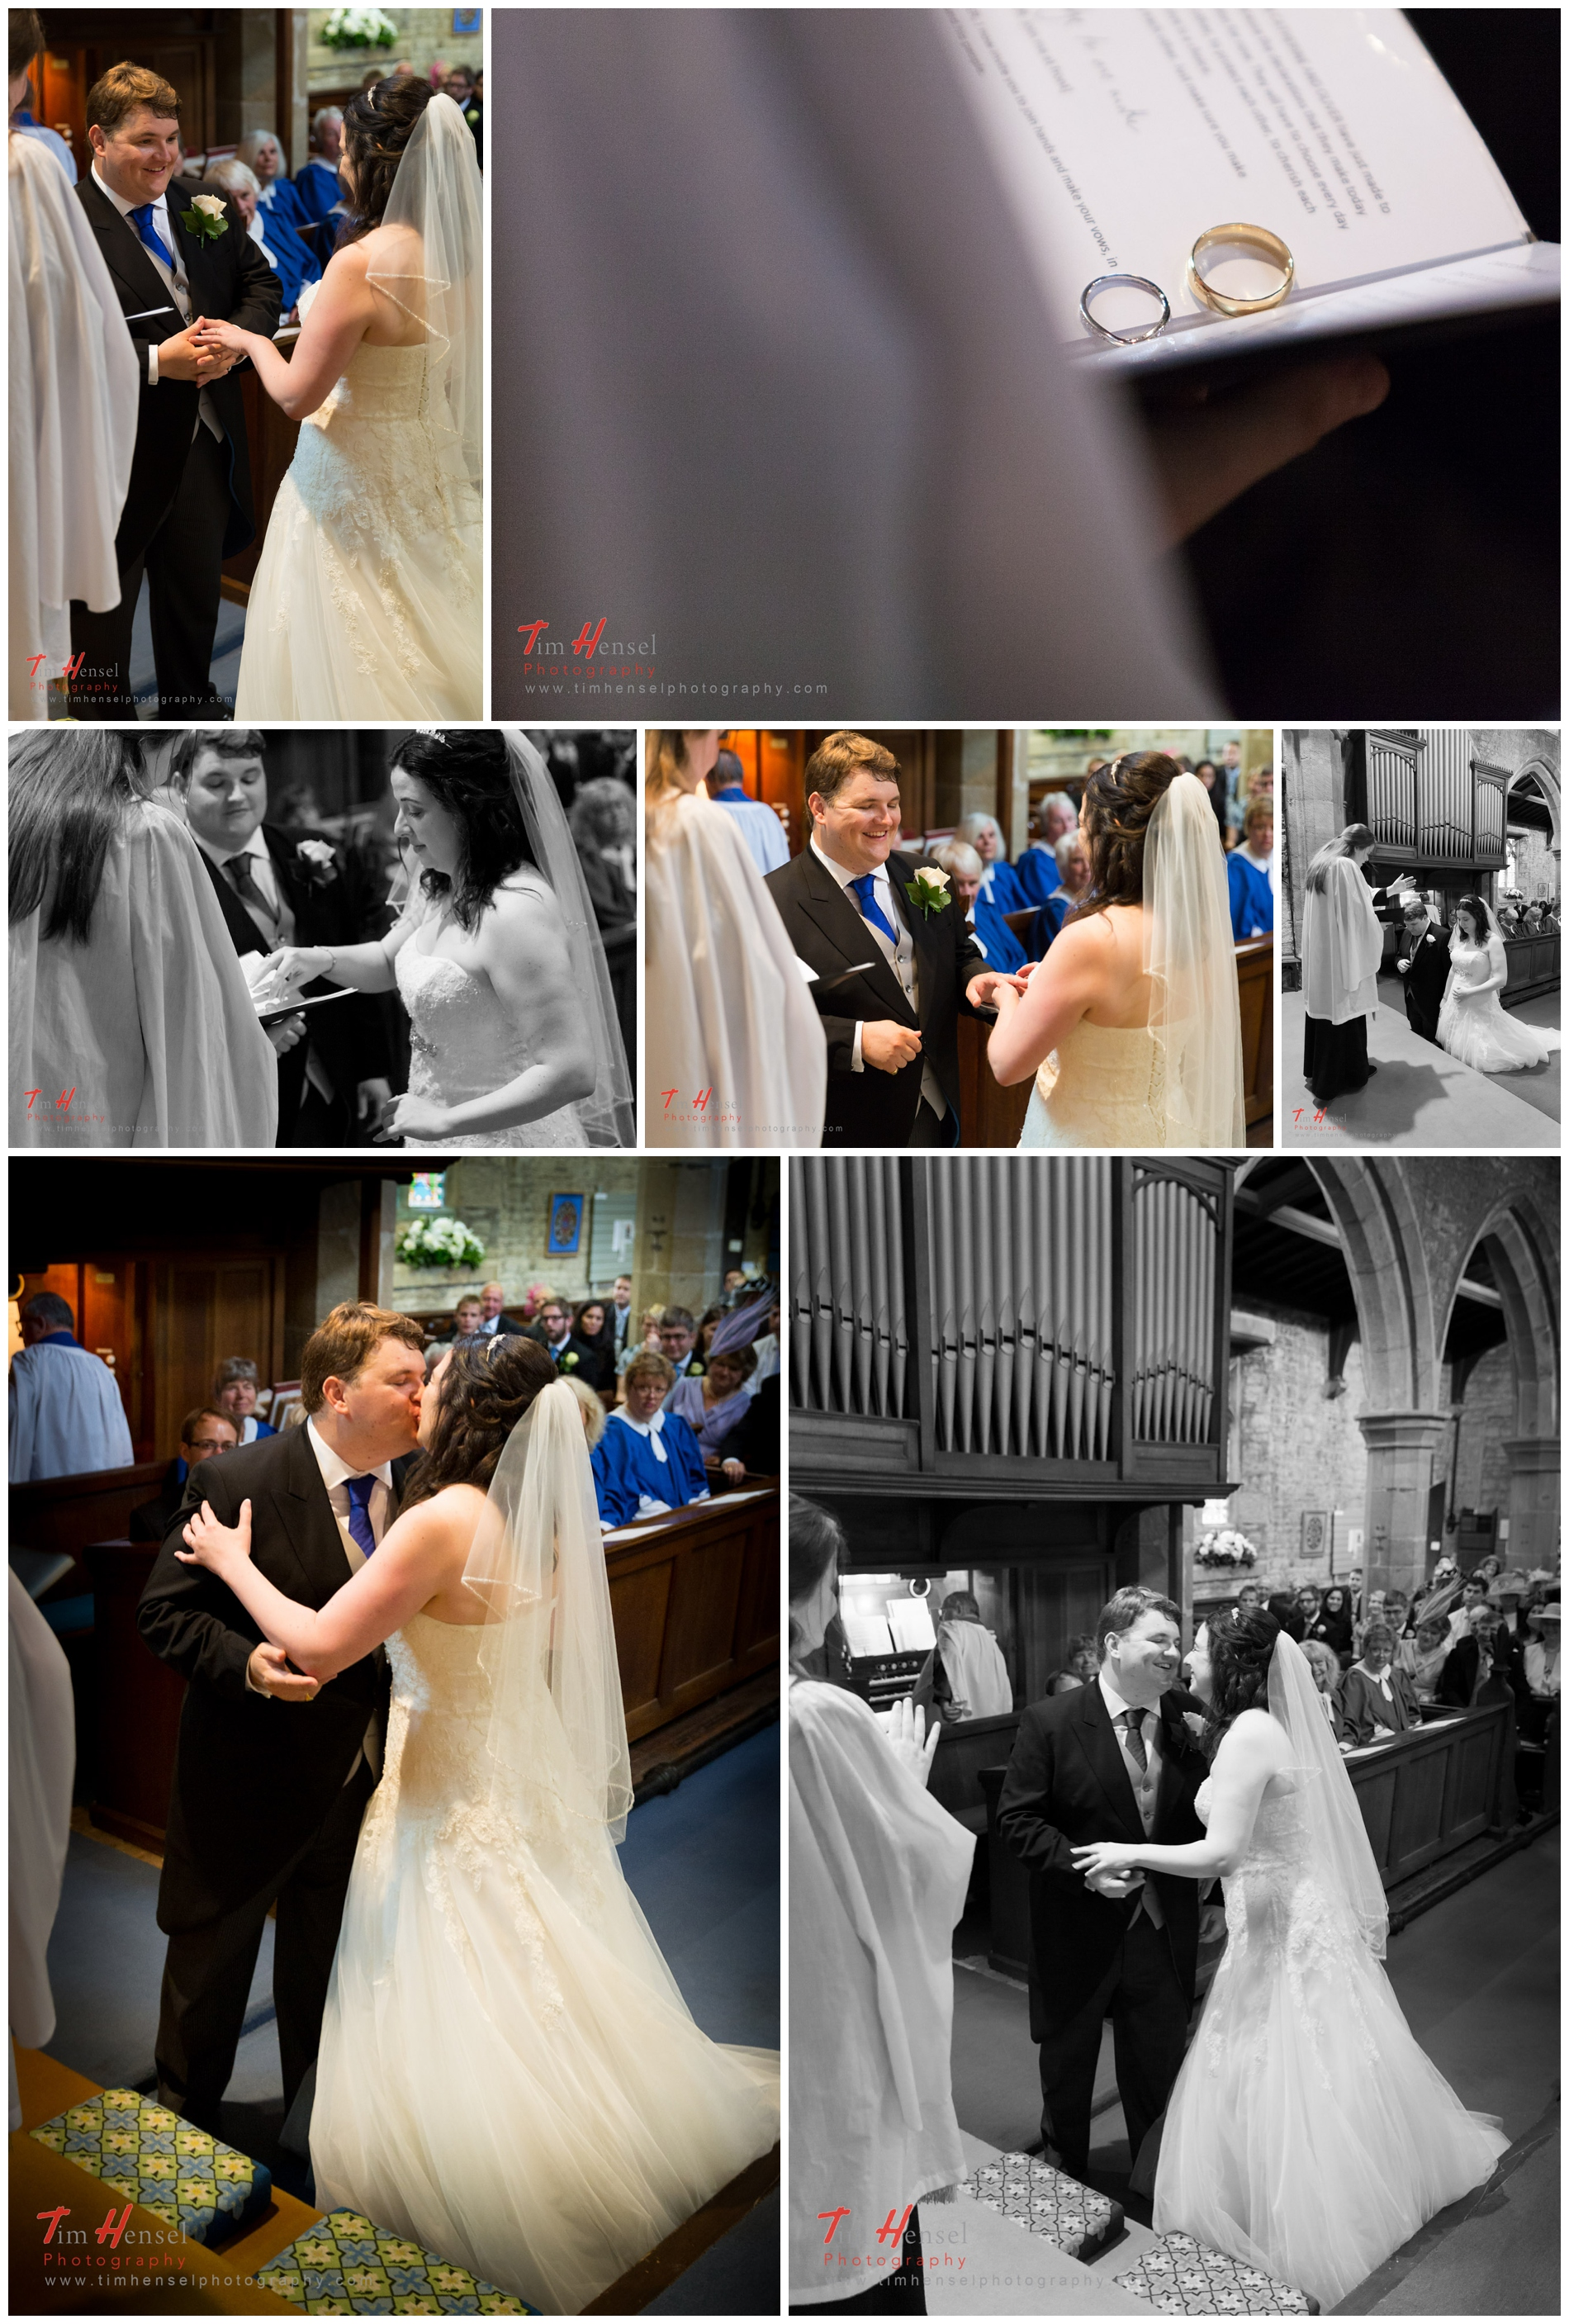 wedding photography in derbyshire, at st michael & all angels church